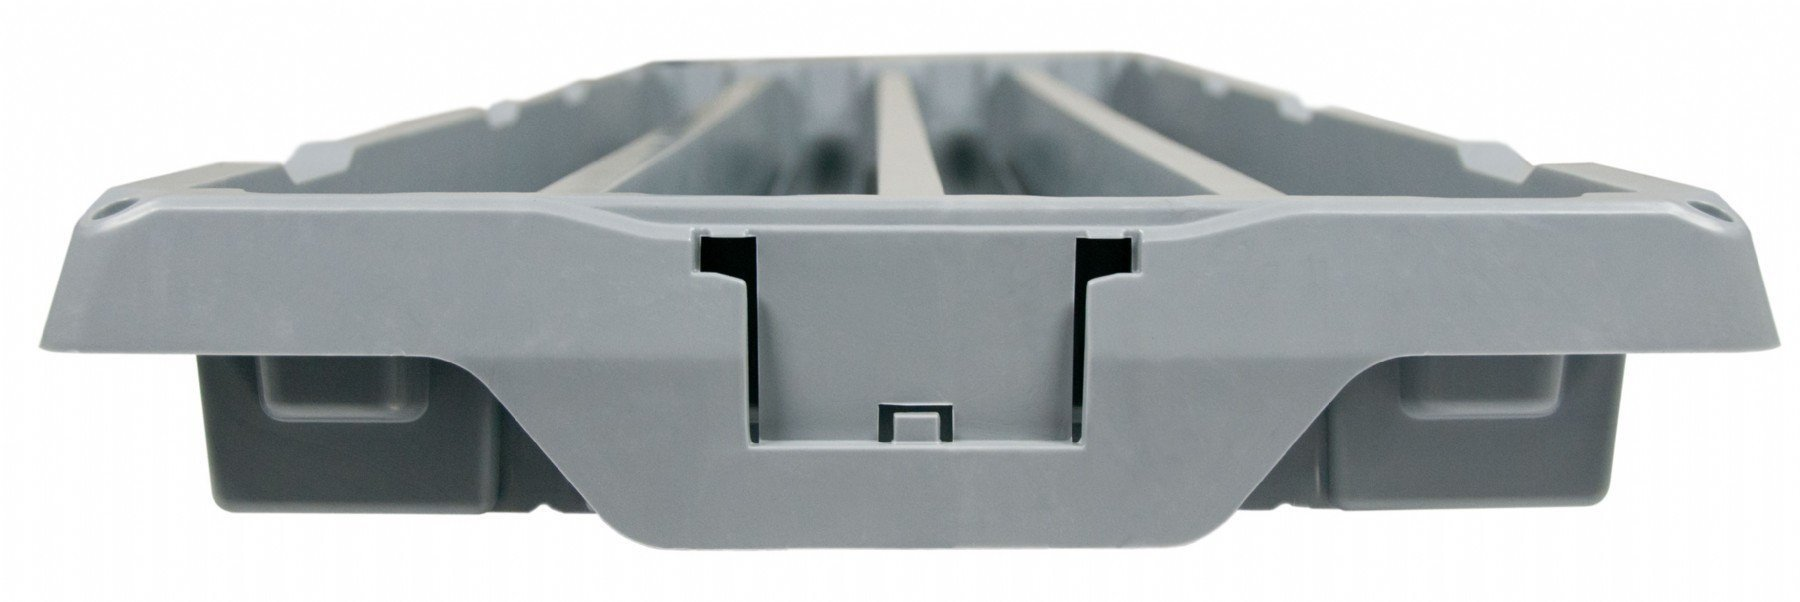 P - Ultimate 3 Row CoreSafe Core Tray/Box 1m x 385mm-Normal-Prospectors